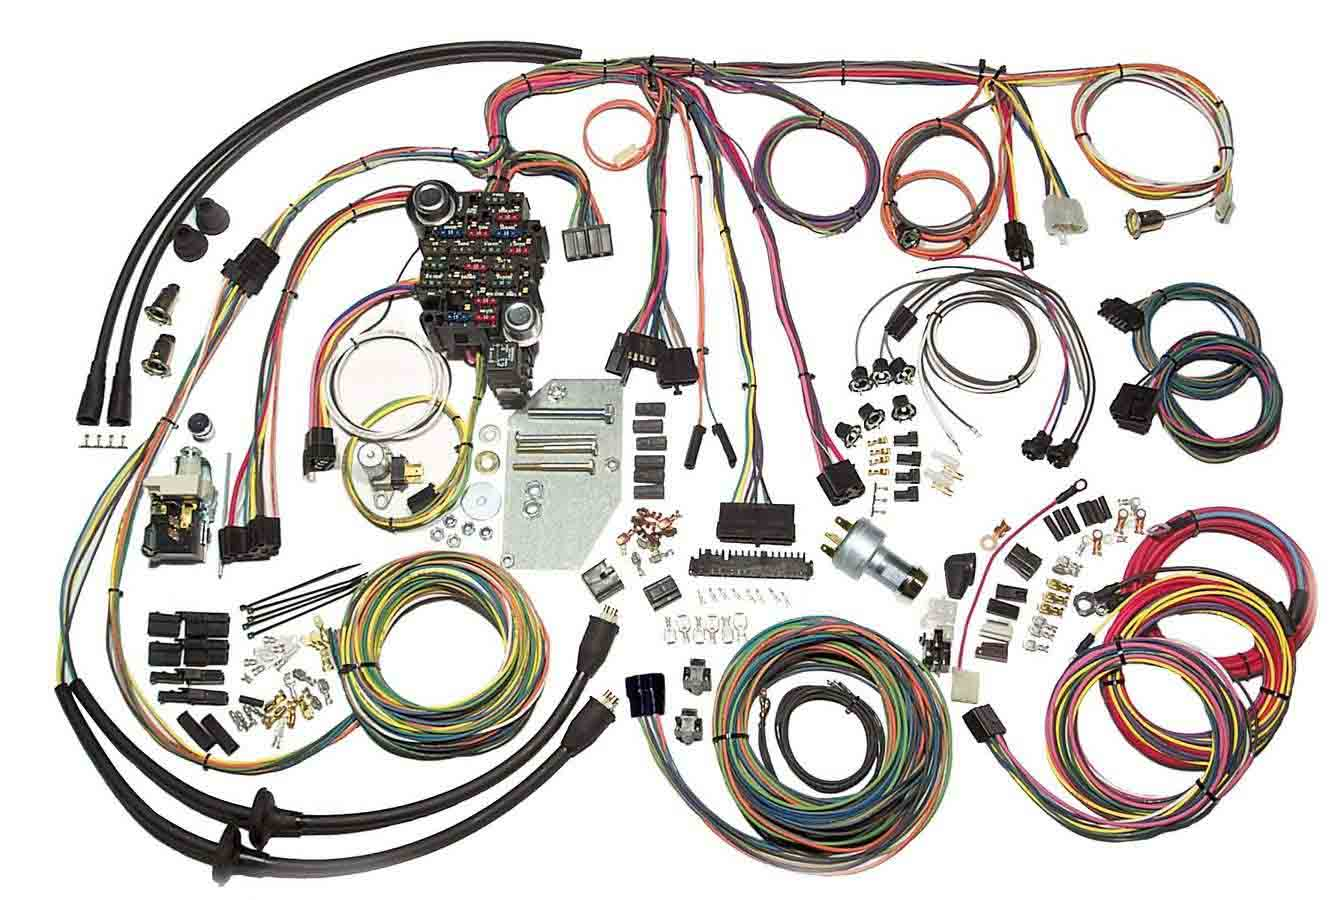 hight resolution of 55 56 chevy classic update wiring system